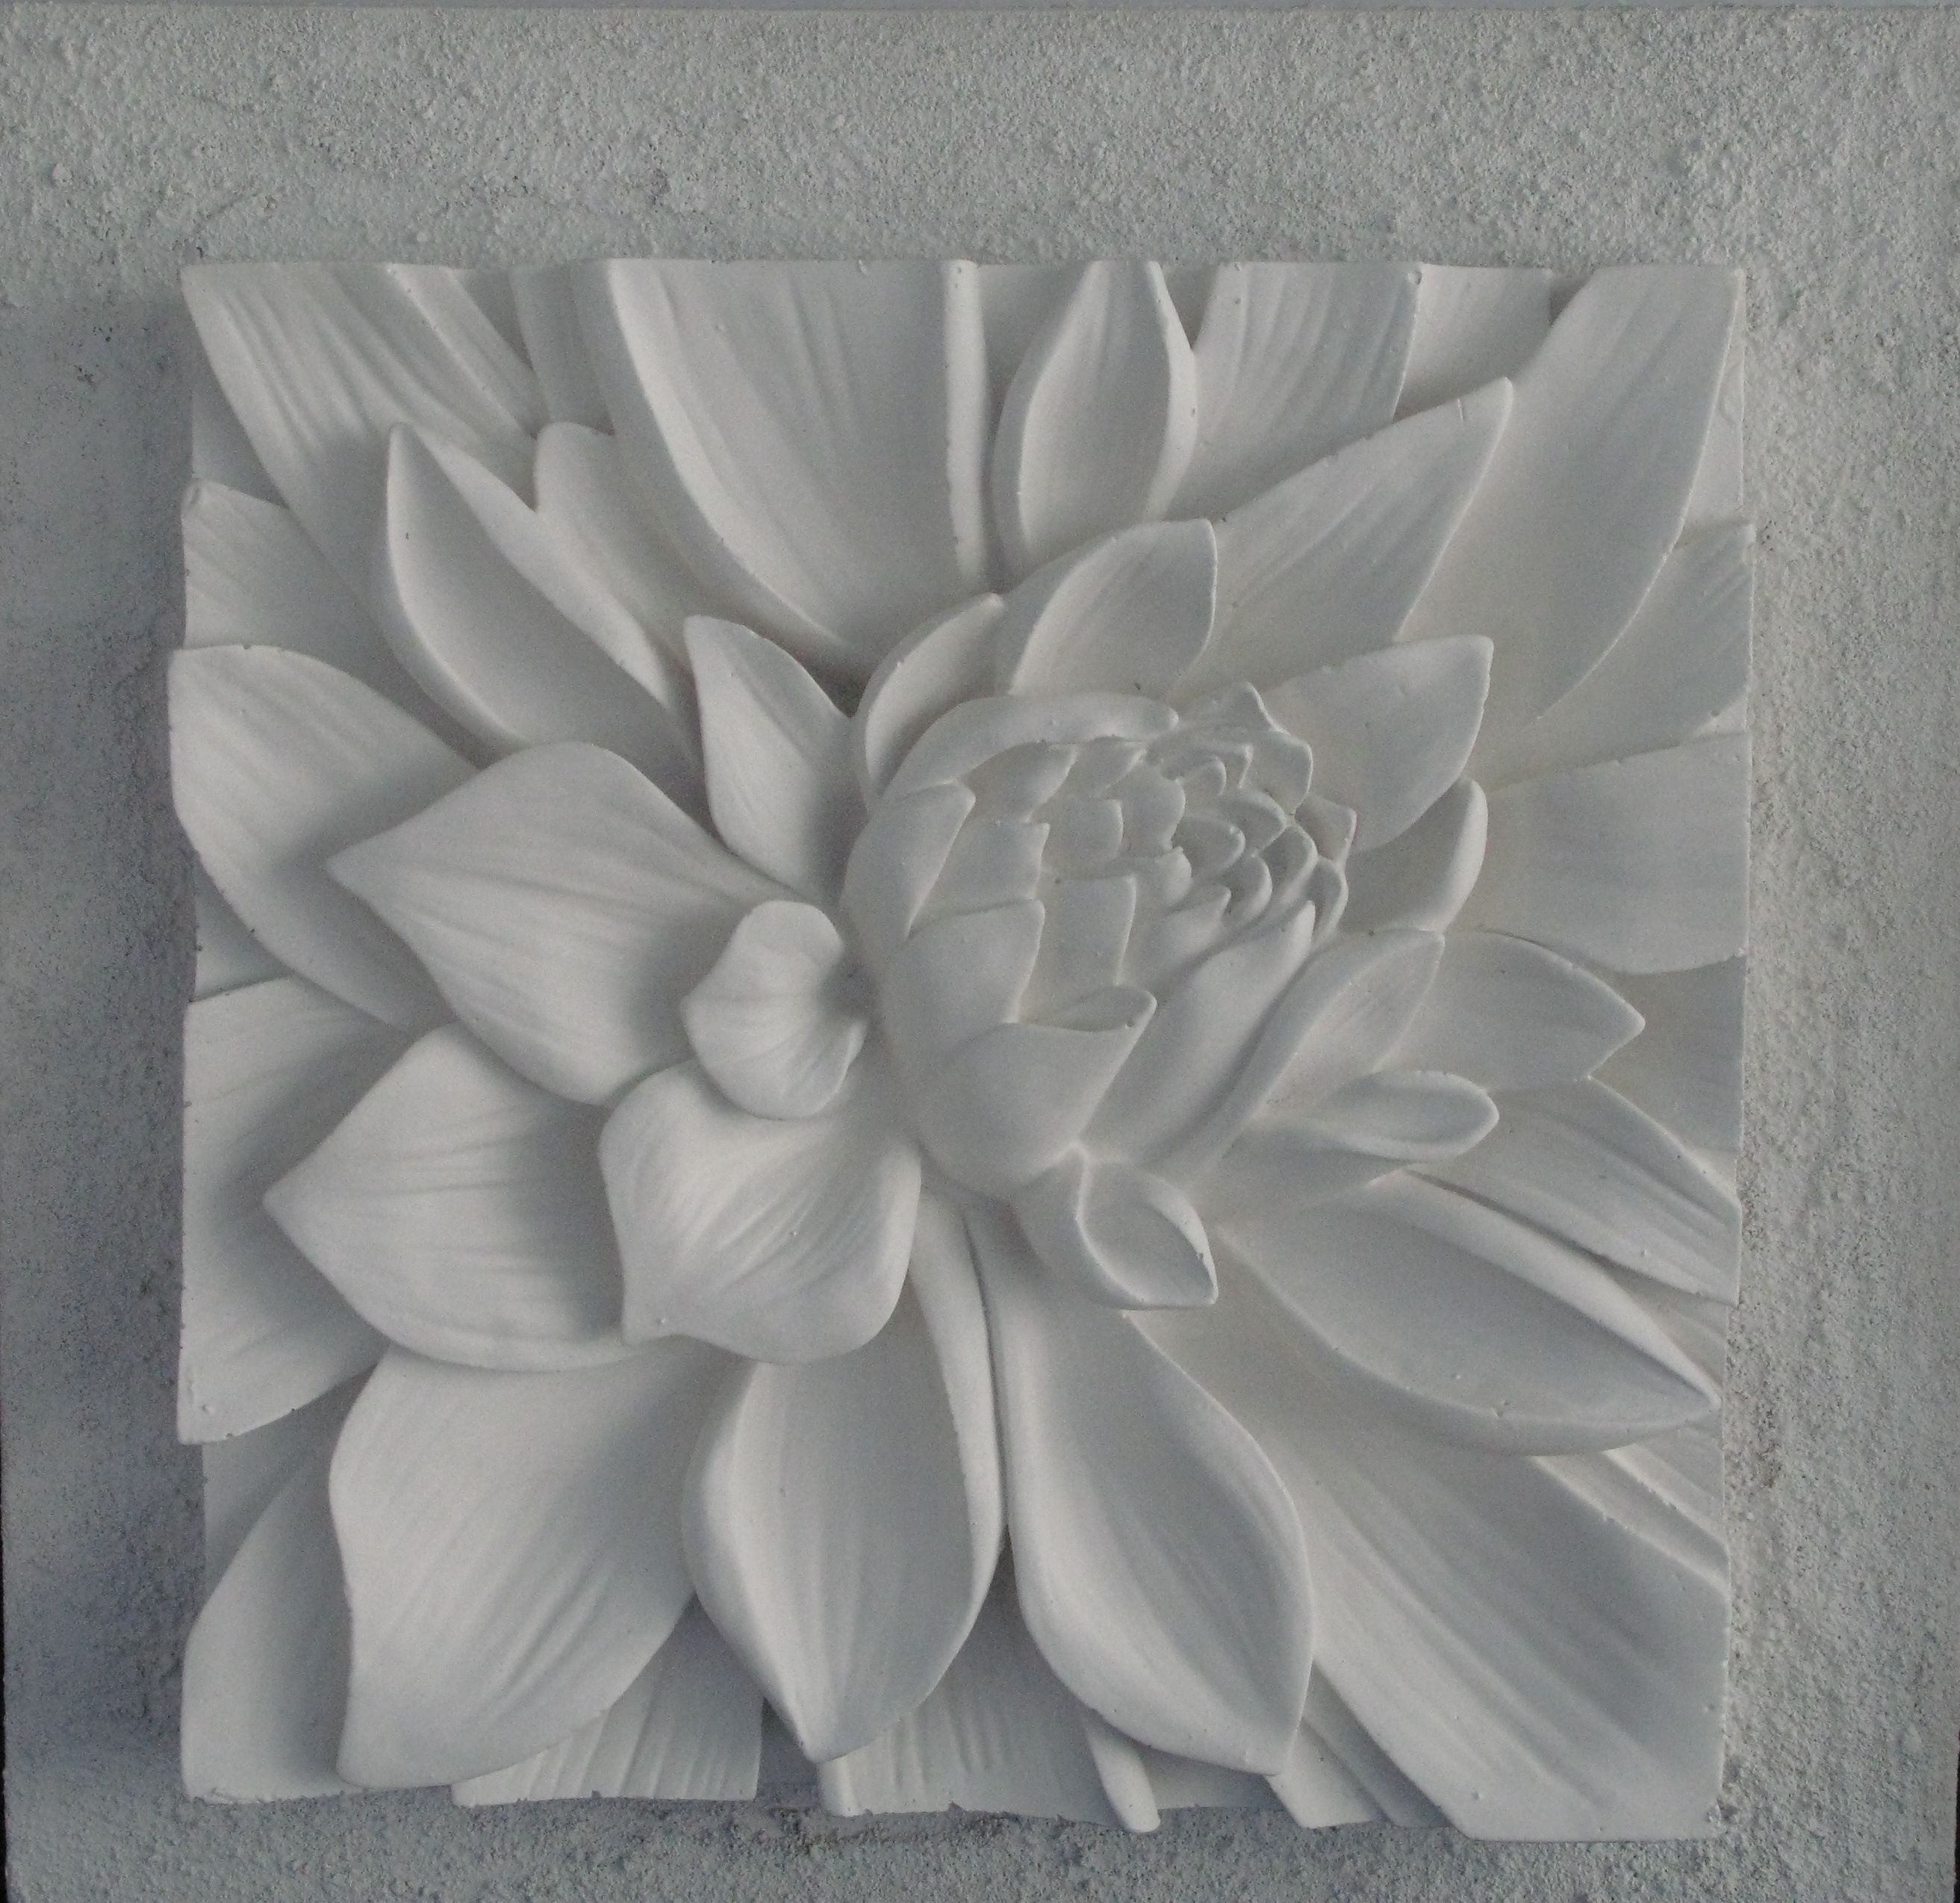 3D Sculptural Art With Textured Background. Lotus Flower with 3 Piece Ceramic Flowers Wall Decor Sets (Image 11 of 30)